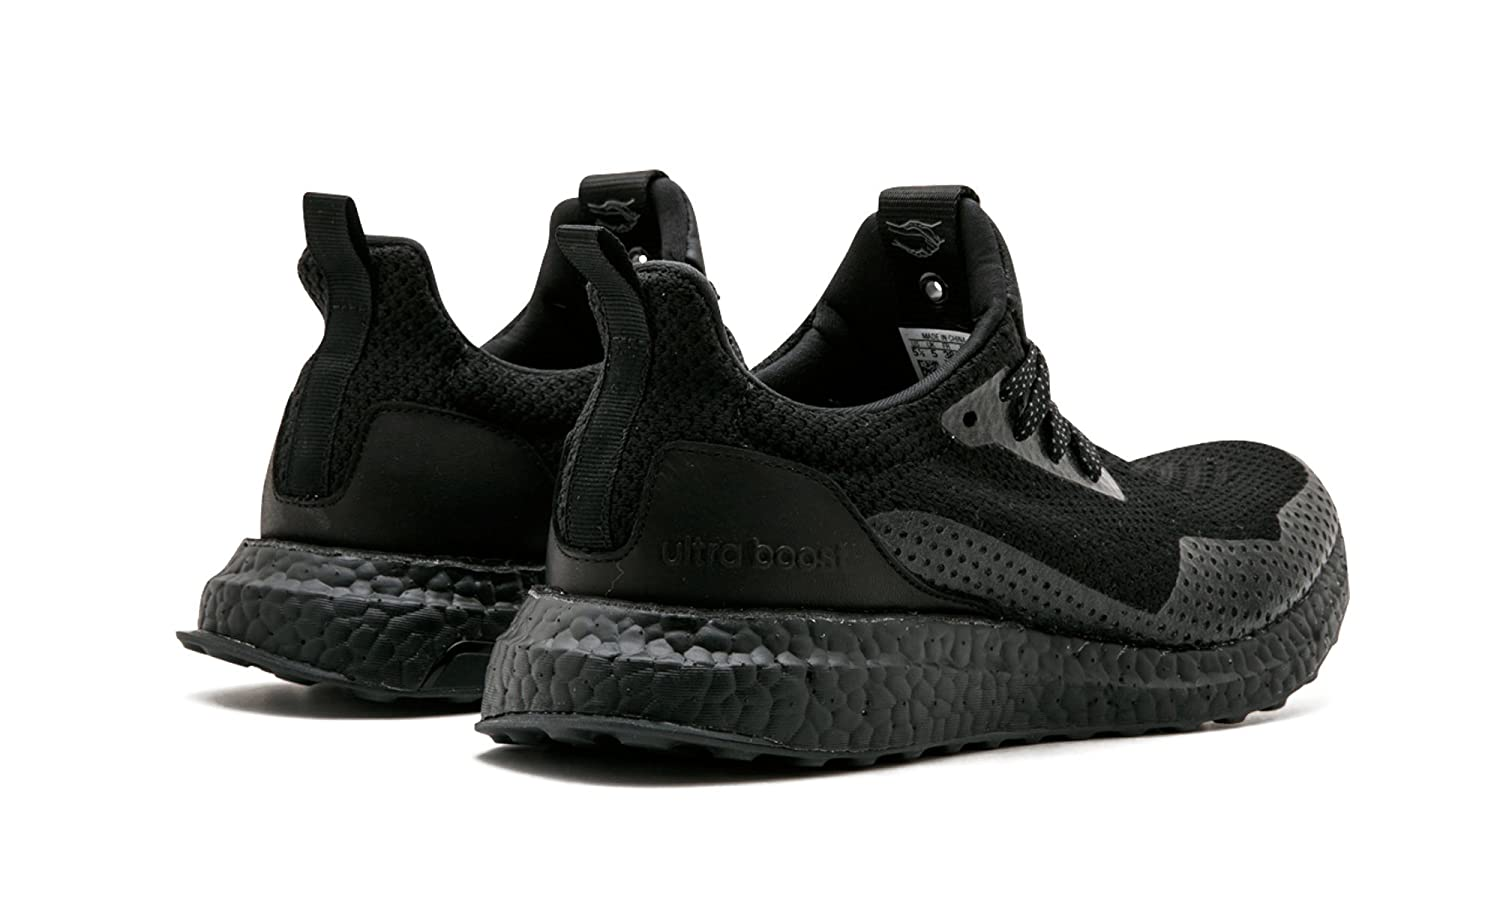 92e48c0c580fb adidas Mens Ultraboost Uncaged Haven Black Fabric  Amazon.co.uk  Shoes    Bags